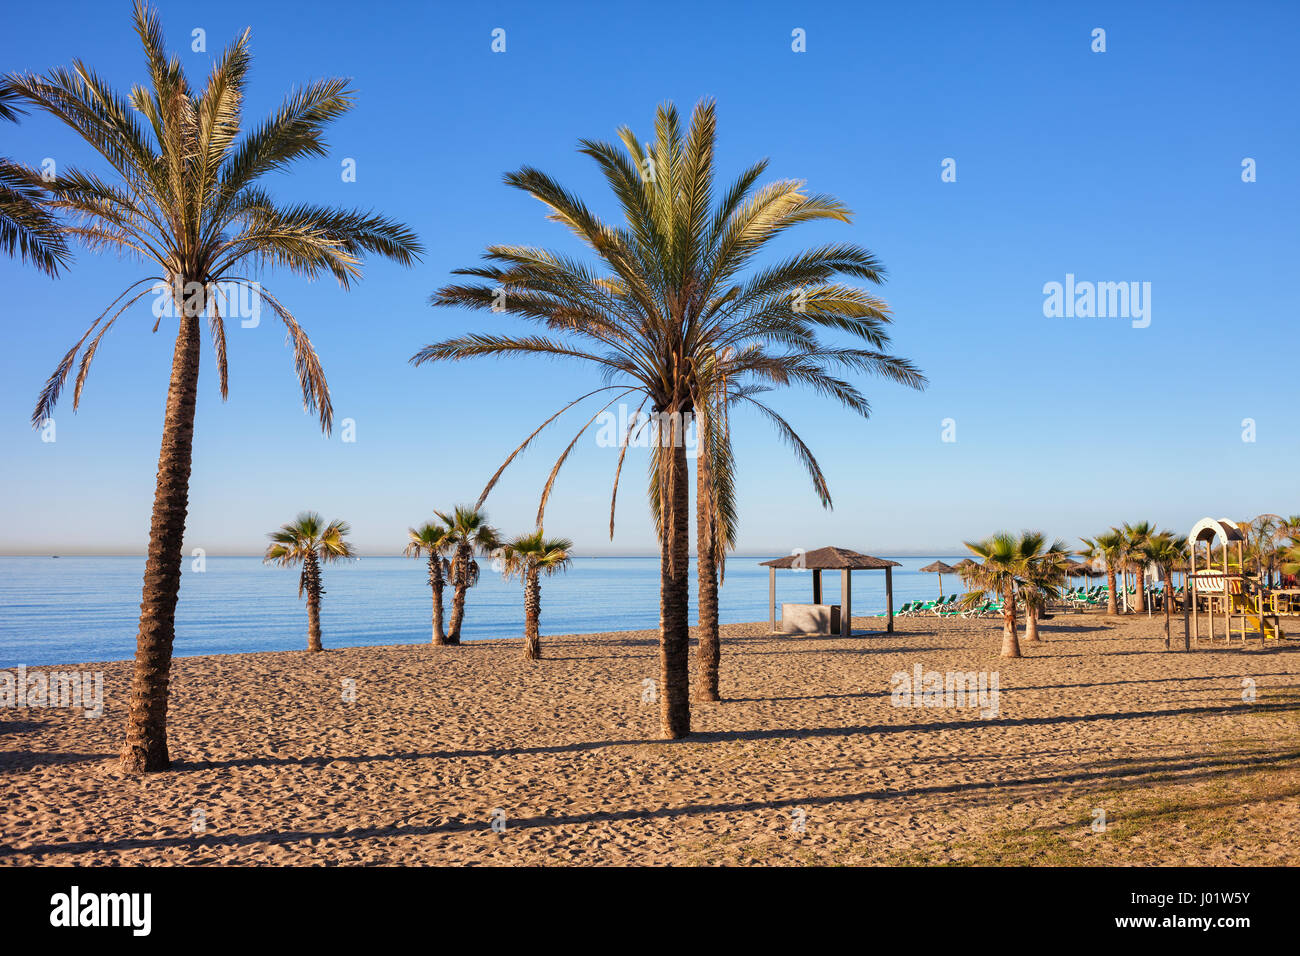 Spain, Marbella, beach with palm trees in resort city on Costa del Sol at Mediterranean Sea. - Stock Image